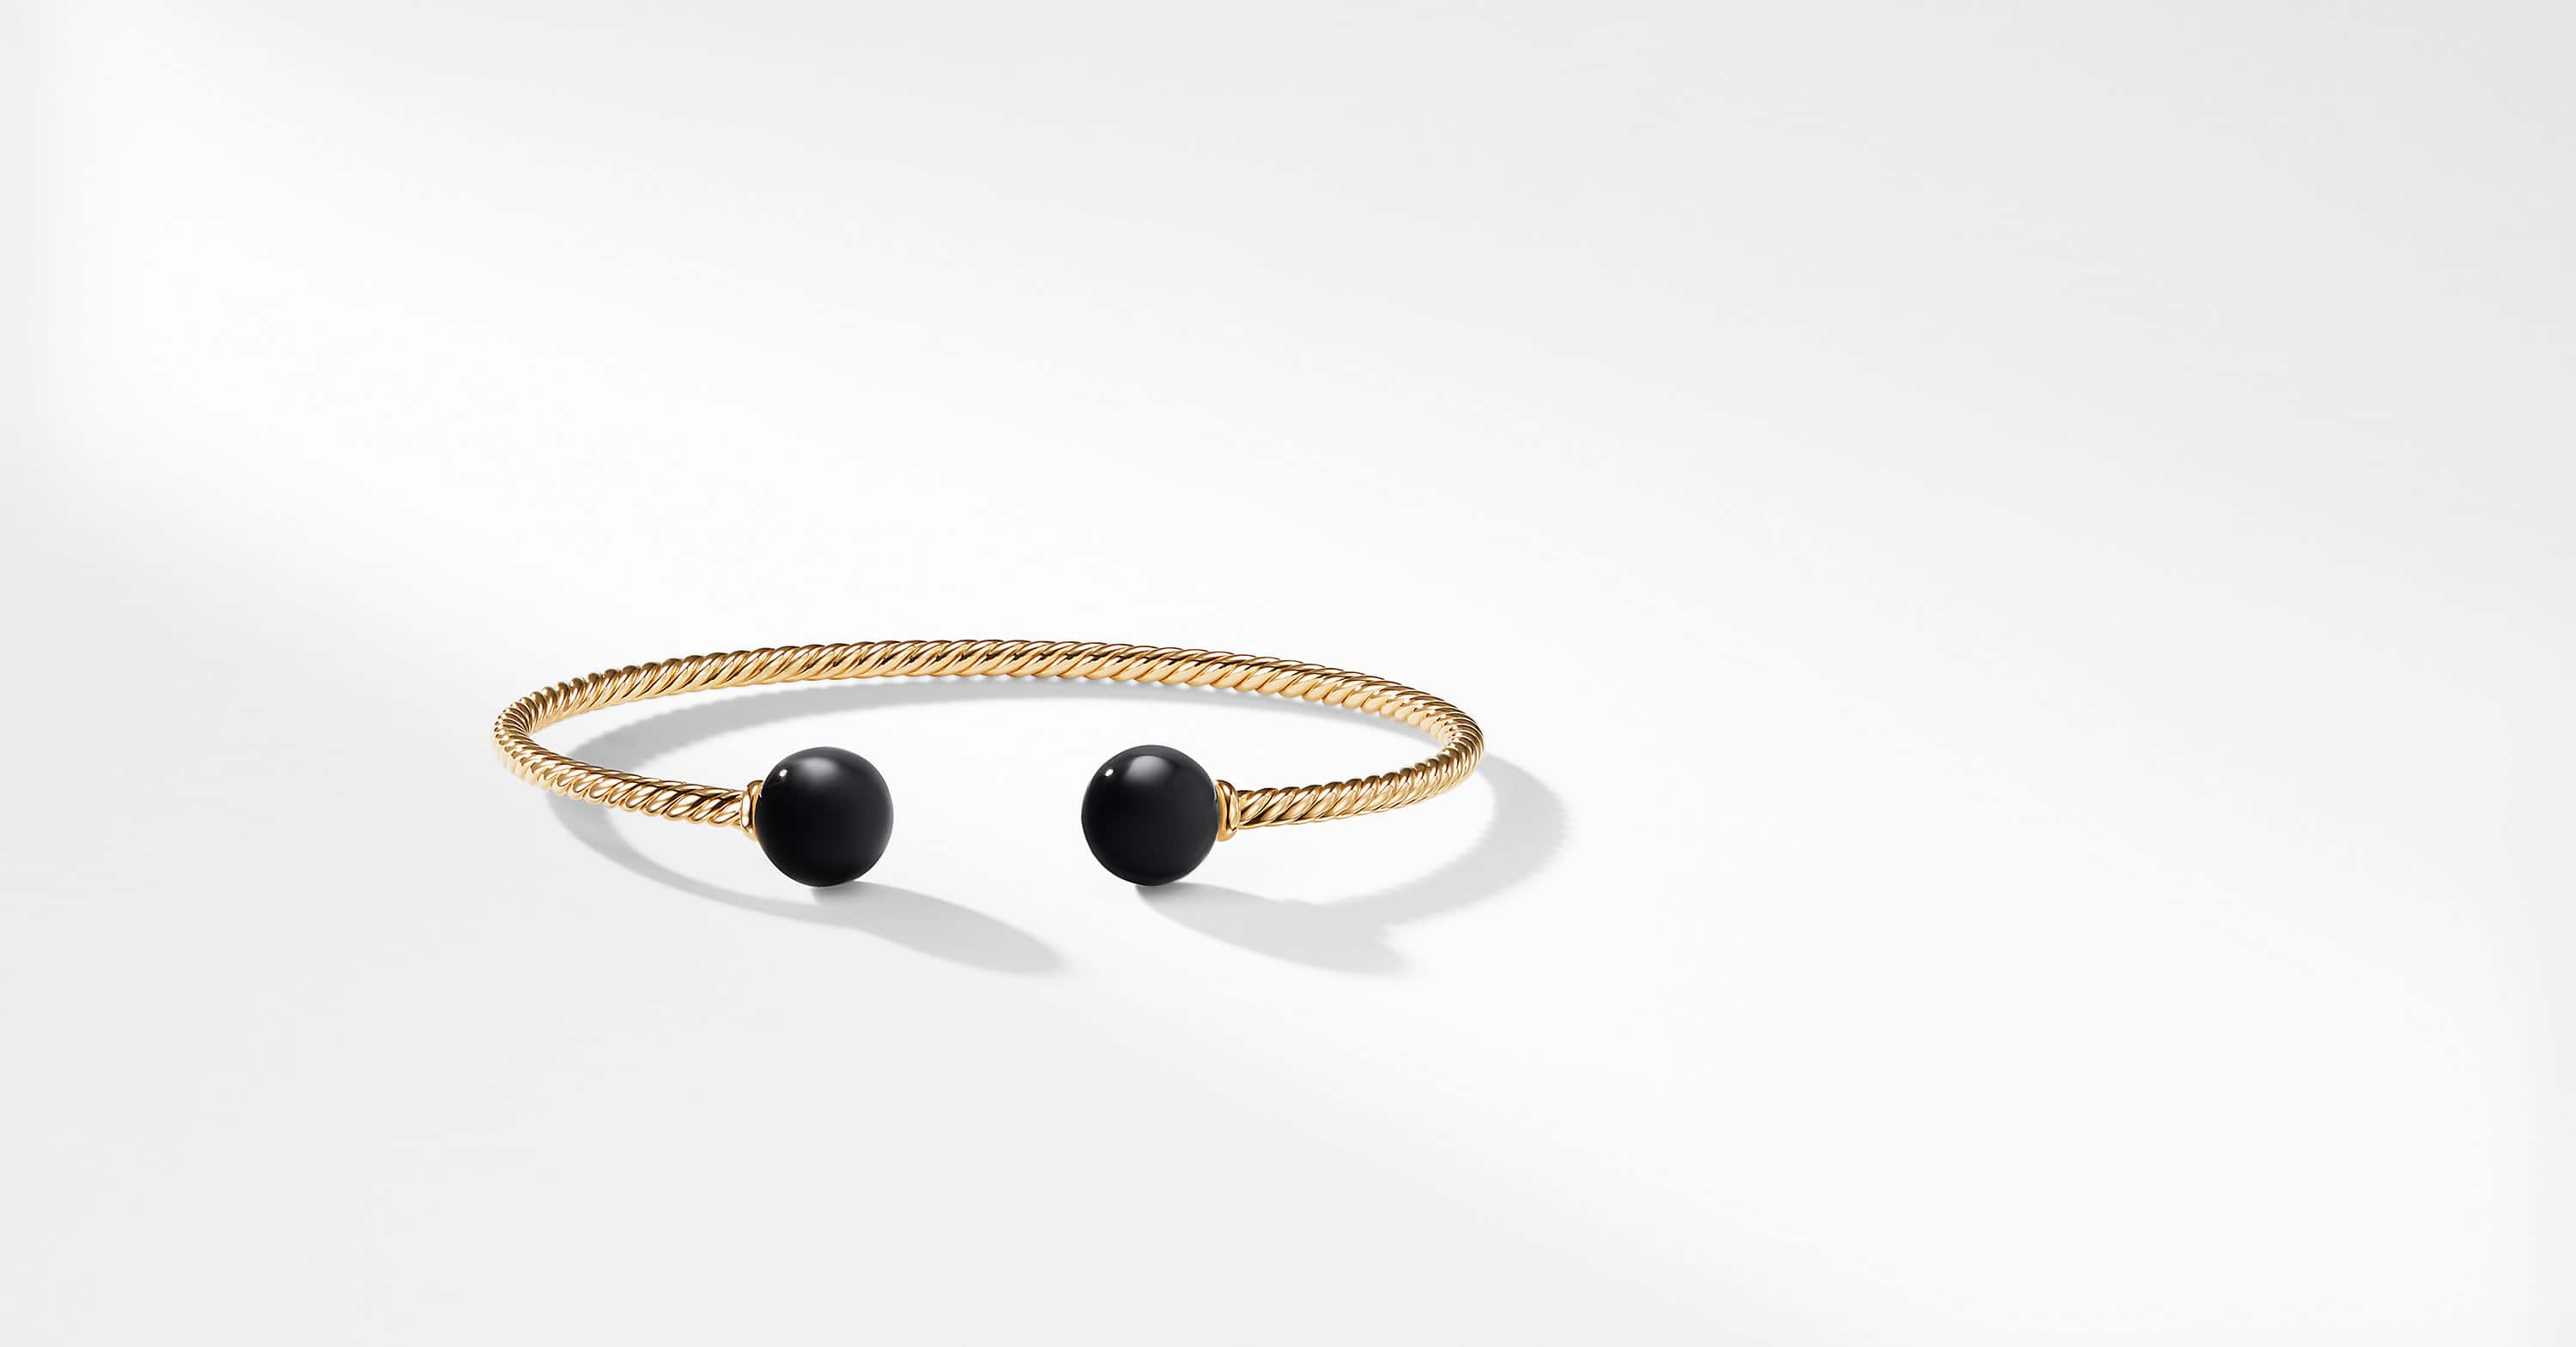 Solari Bead Bracelet in 18K Gold